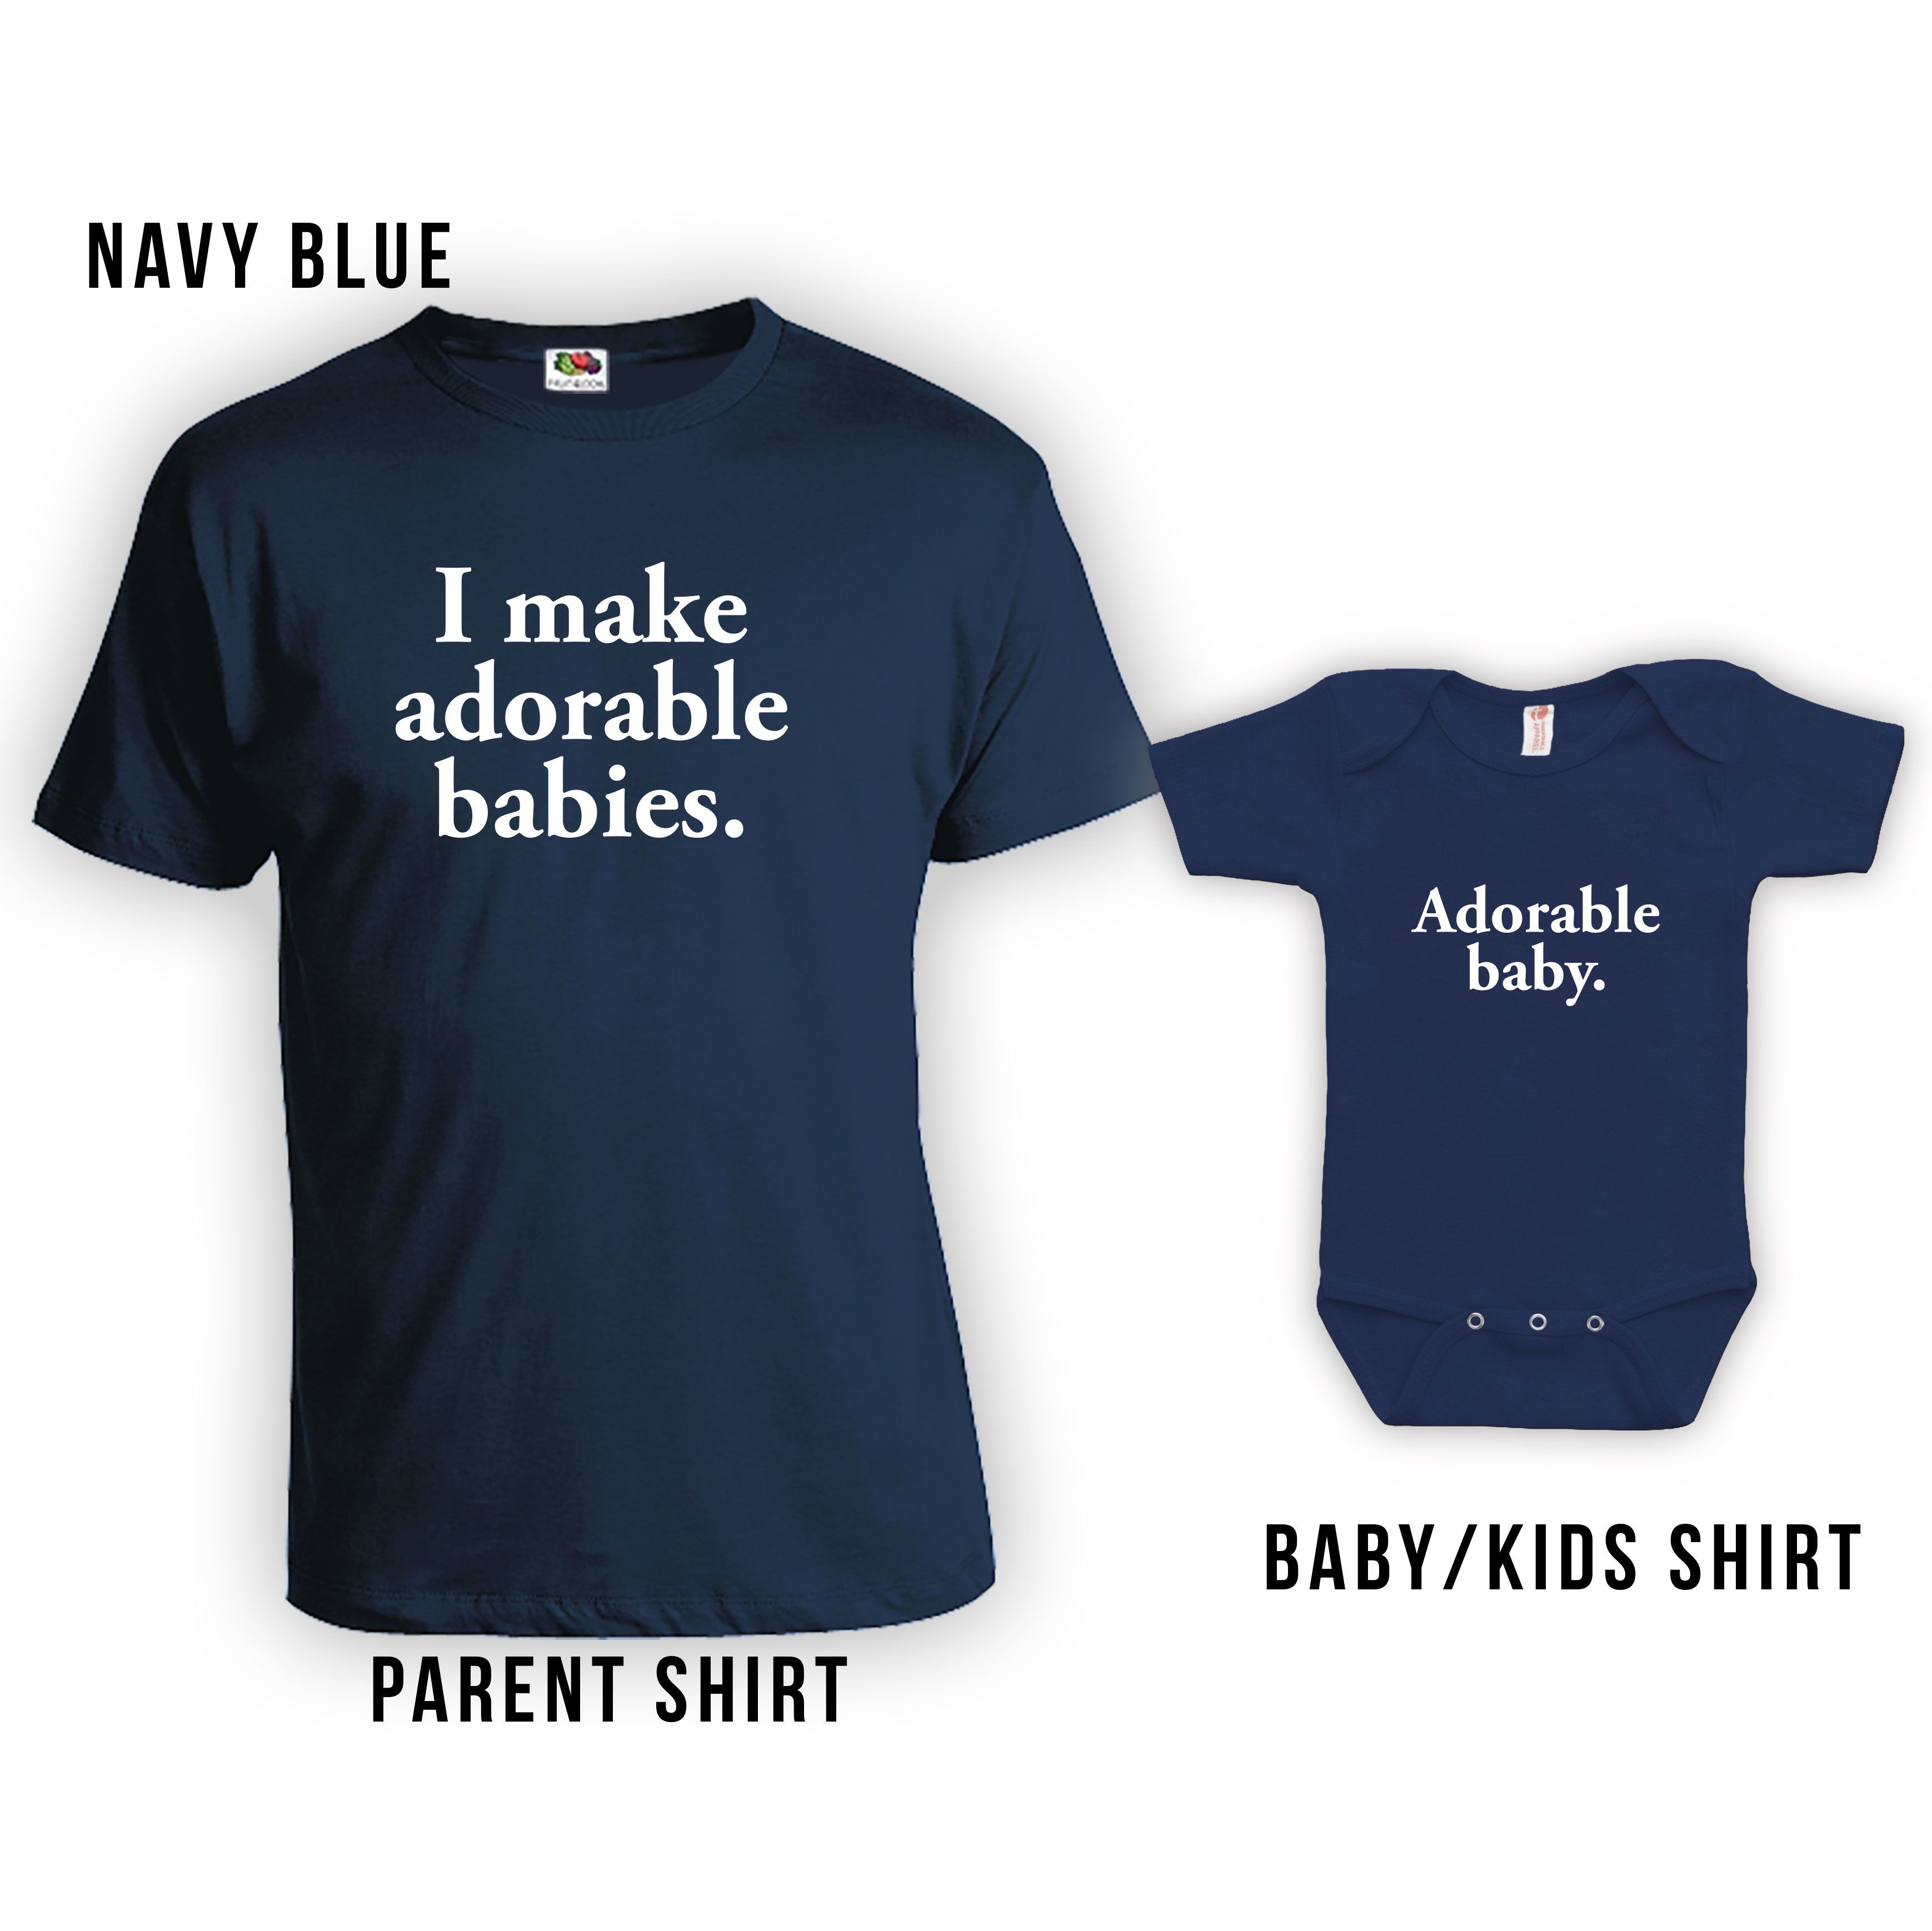 Matching #adorable baby shirts for #fathersday. Unique shirts and more at http://www.etsy.com/shop/lifestyletees on #etsy.